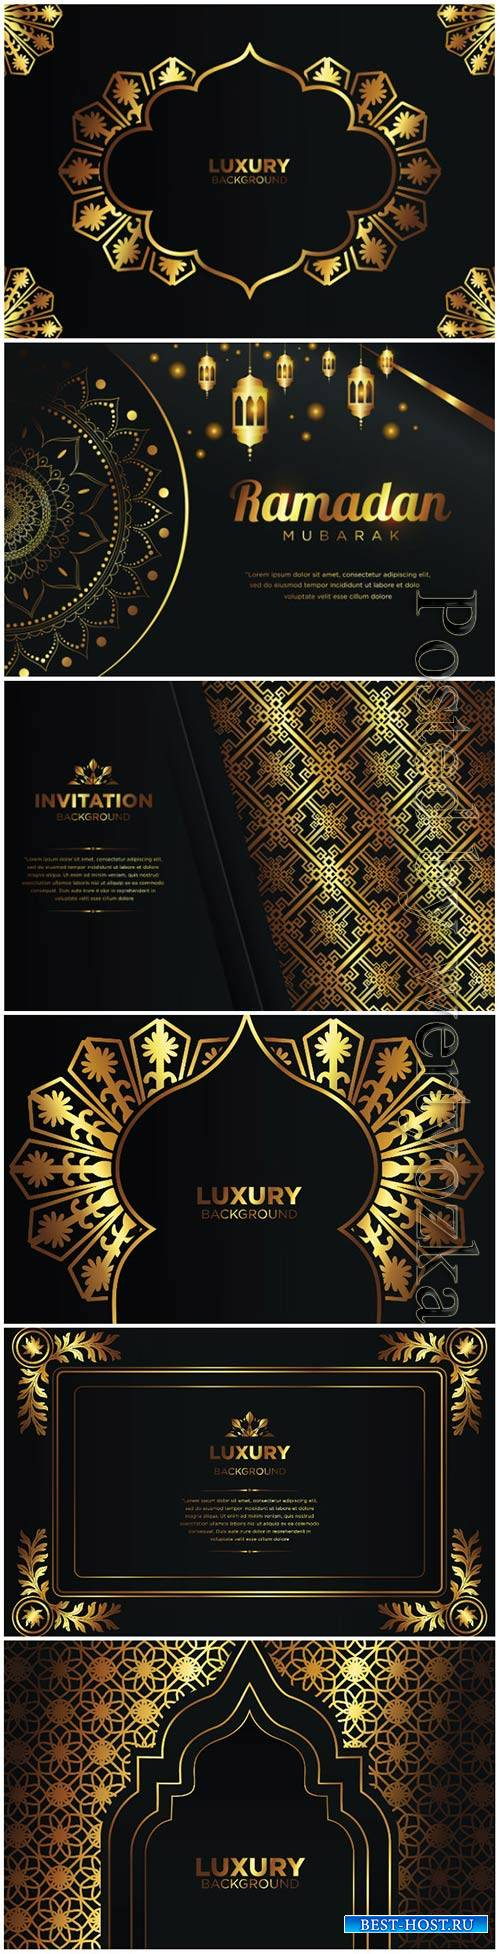 Luxury background ramadan islamic arabesque